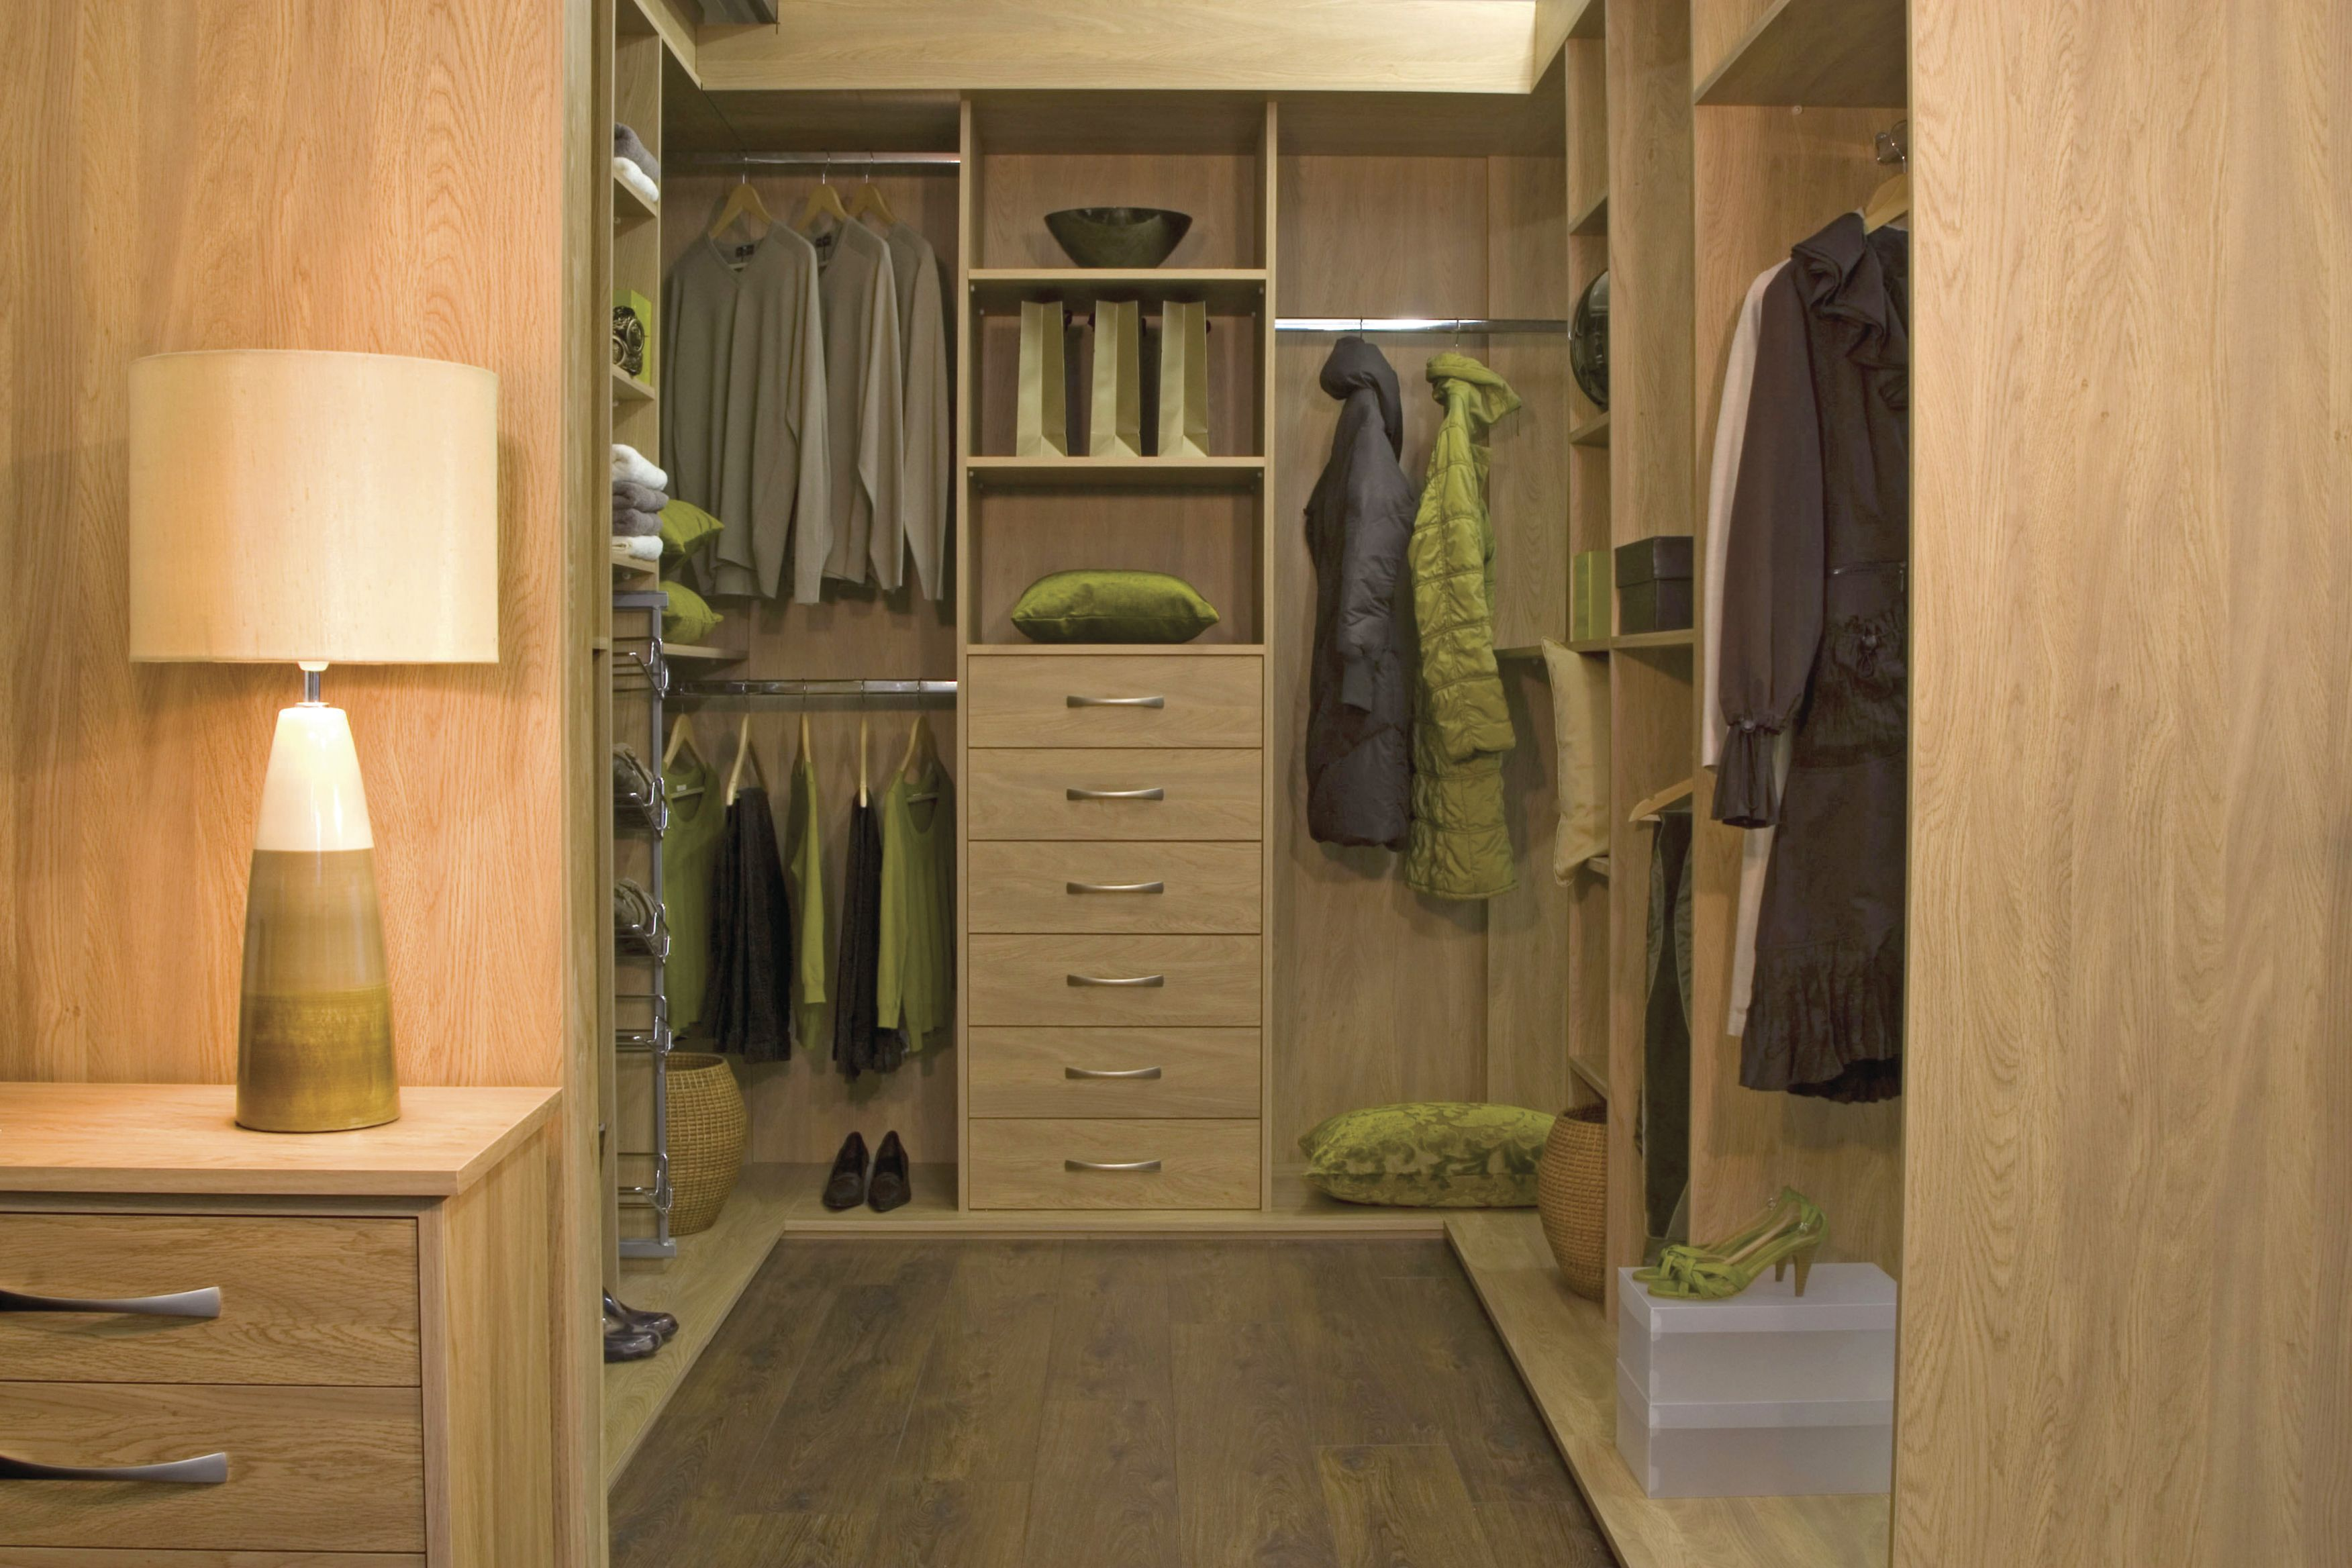 Walk in wardrobes are a great way to take cluttered and bulky